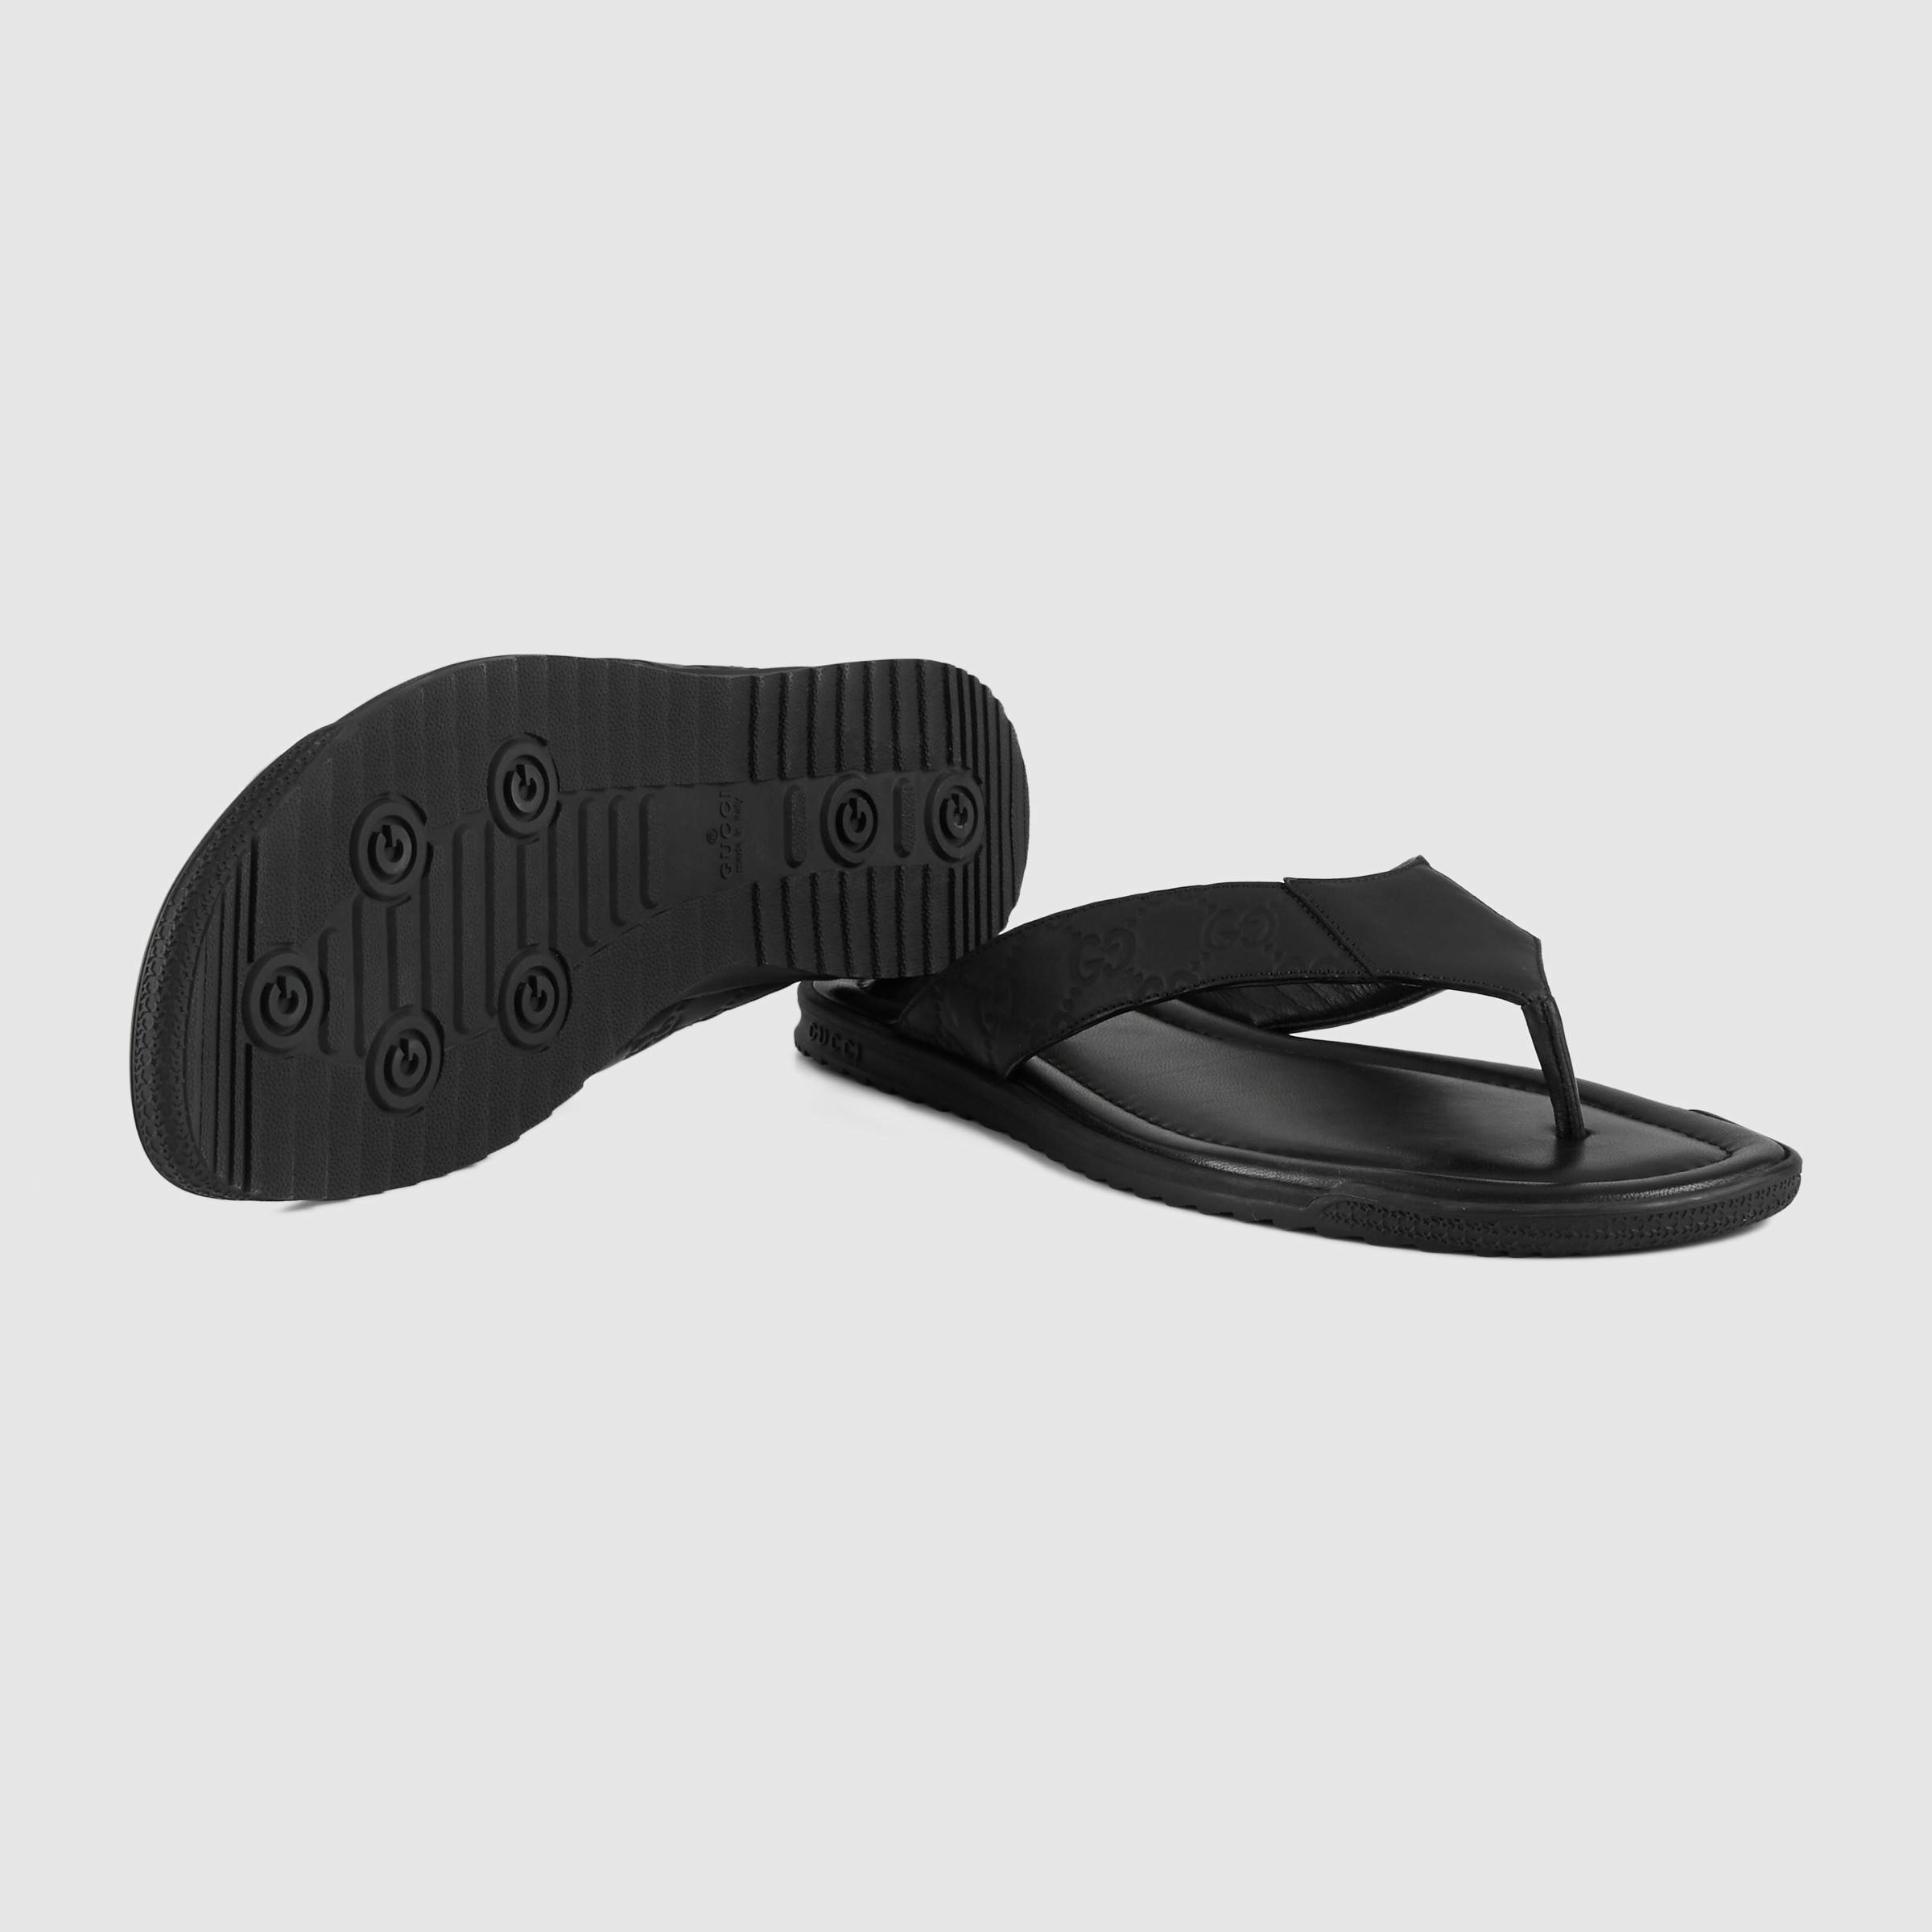 67337587b99a Lyst - Gucci Rubberized Leather Thong Sandal in Black for Men